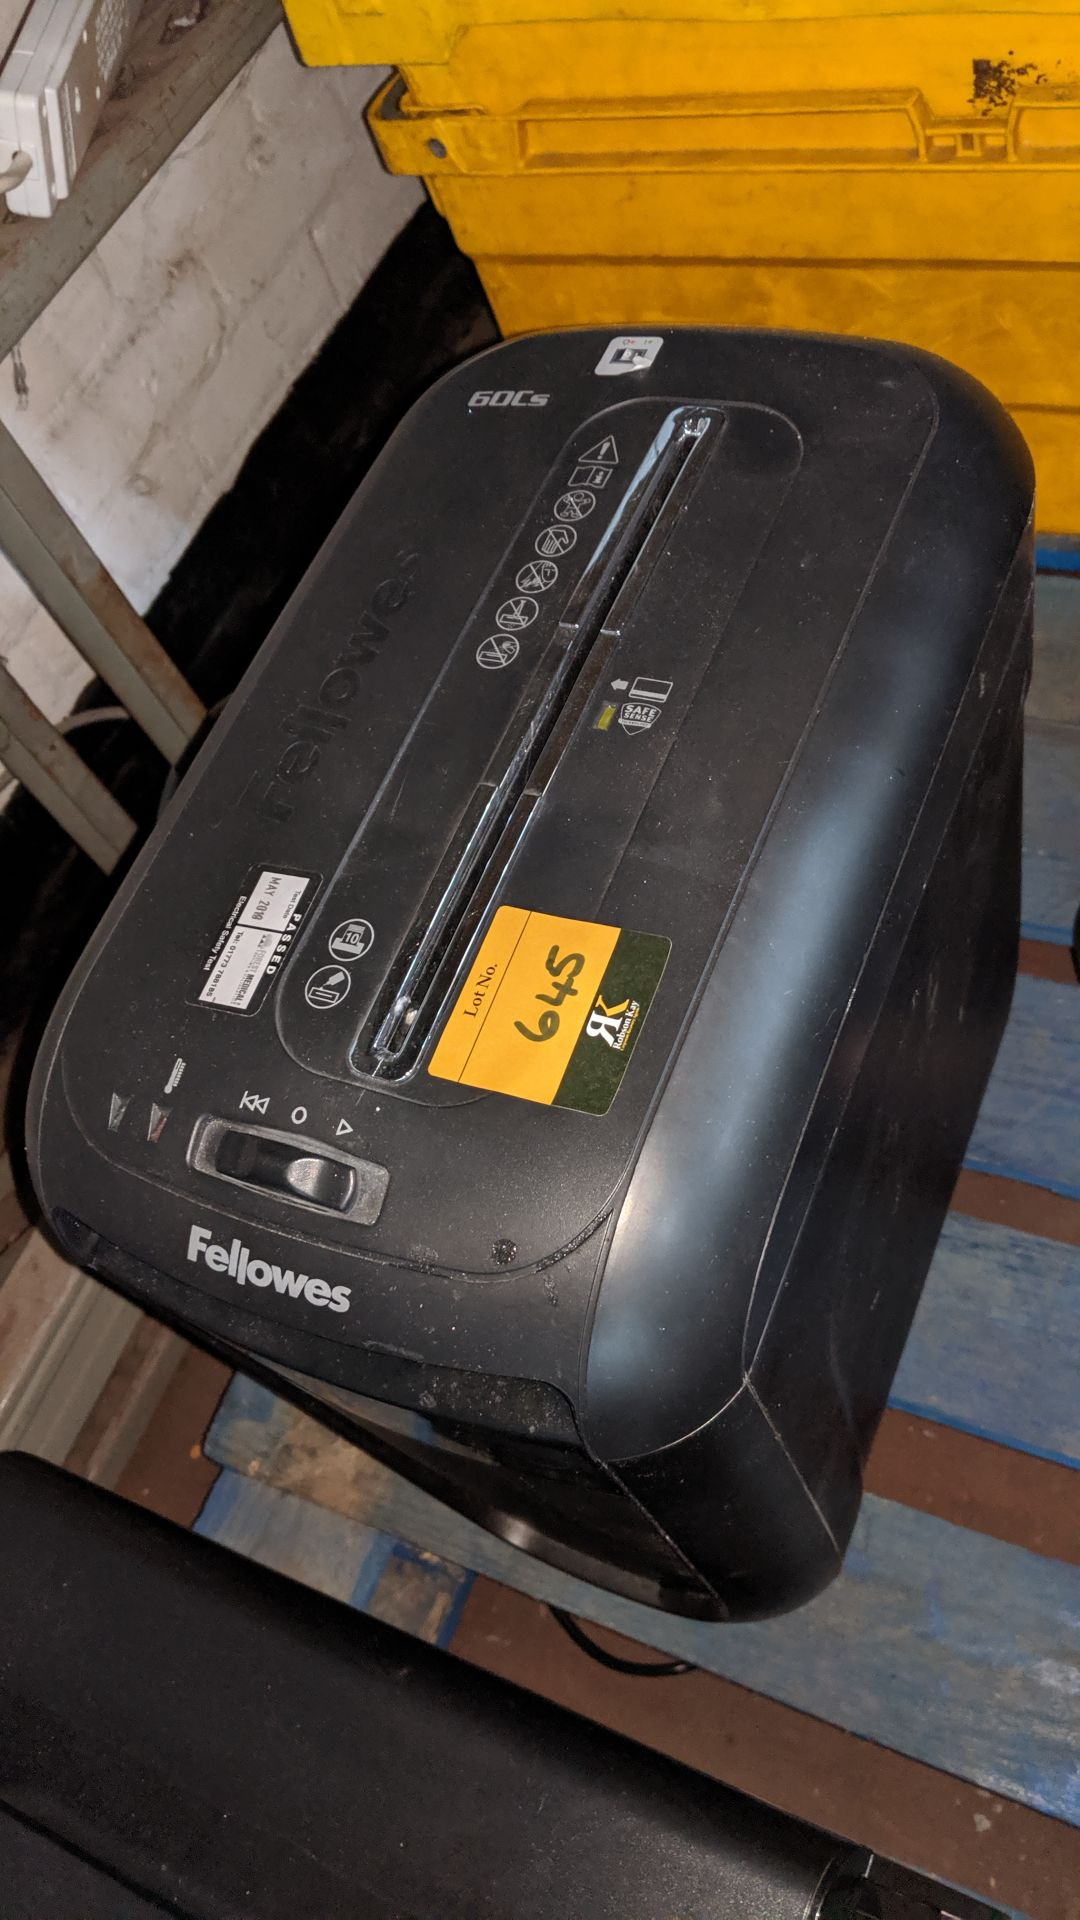 Lot 645 - Fellowes paper shredder. This is one of a large number of lots used/owned by One To One (North West)